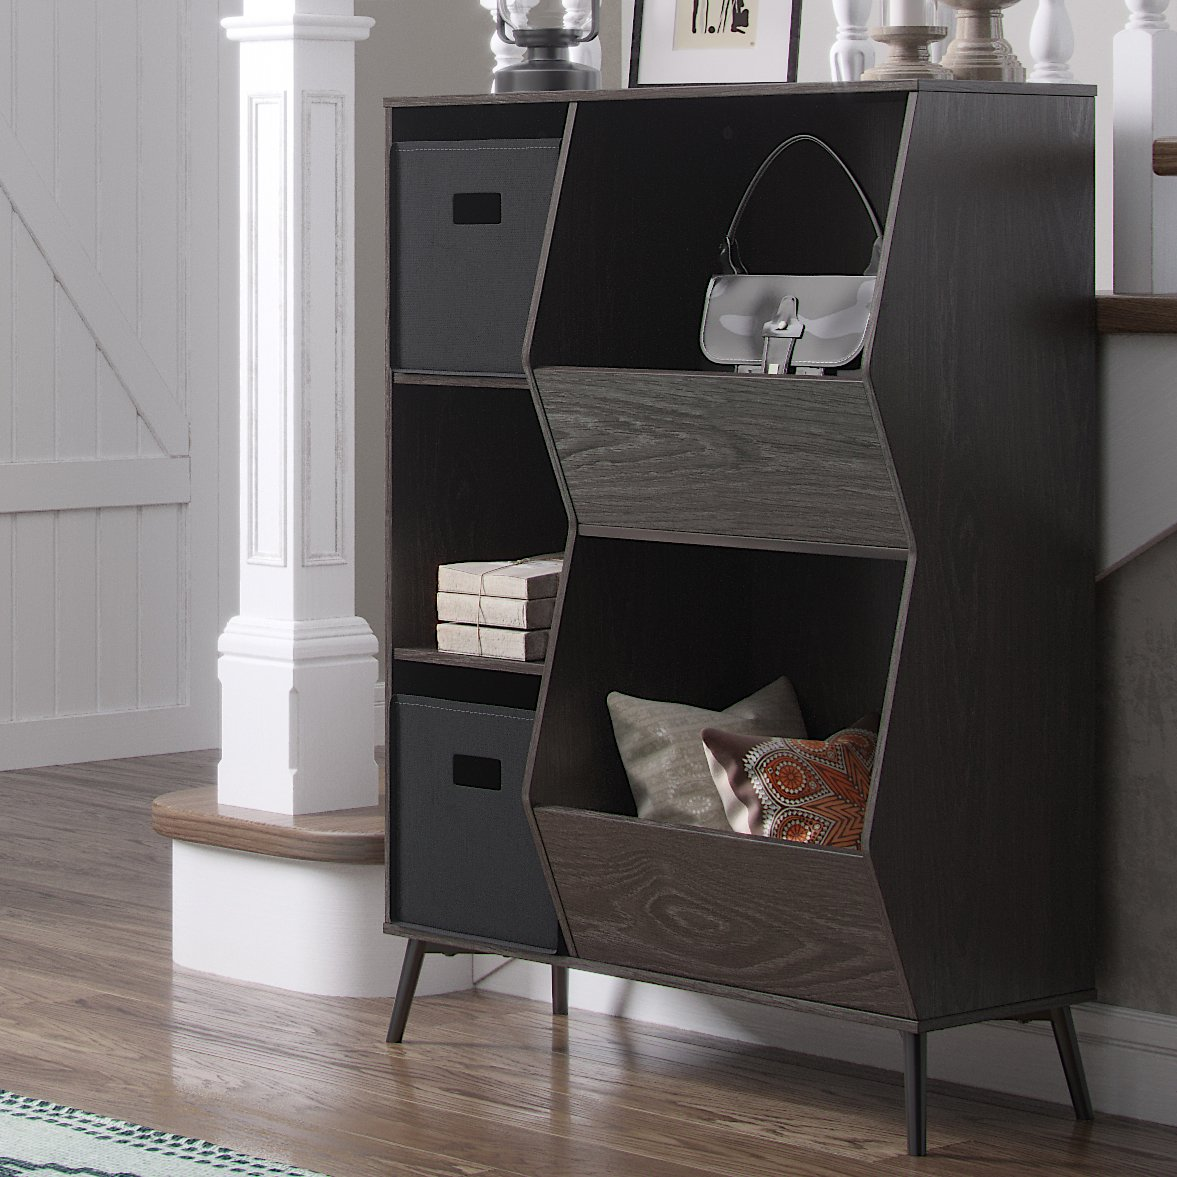 RiverRidge Woodbury Collection Storage Cabinet with Cubbies and Veggie Bins and 2pc Bin - Black